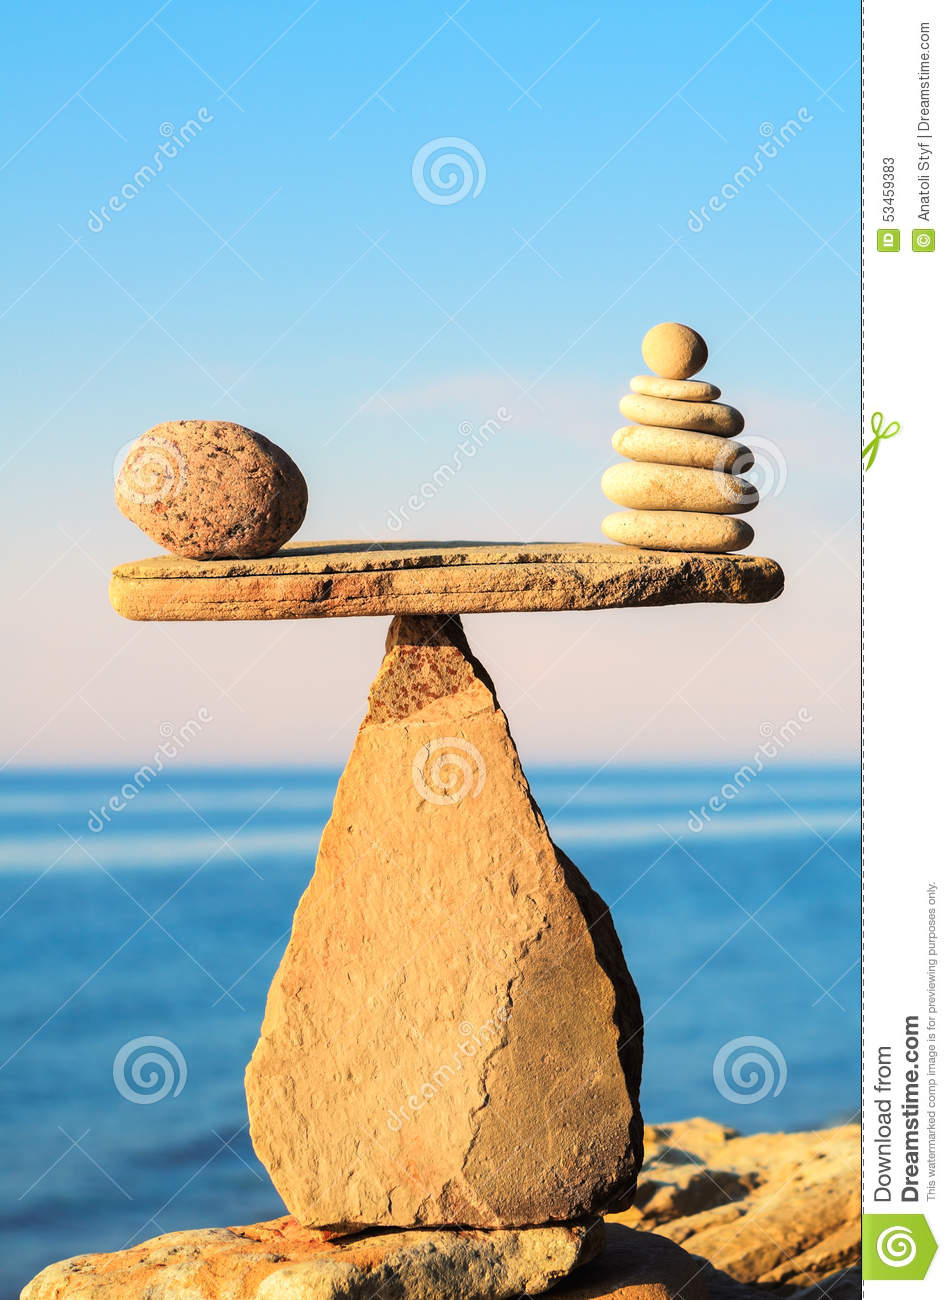 Dreamstime Images Steadiness Stock Image Image Of Poise Coast Boulder